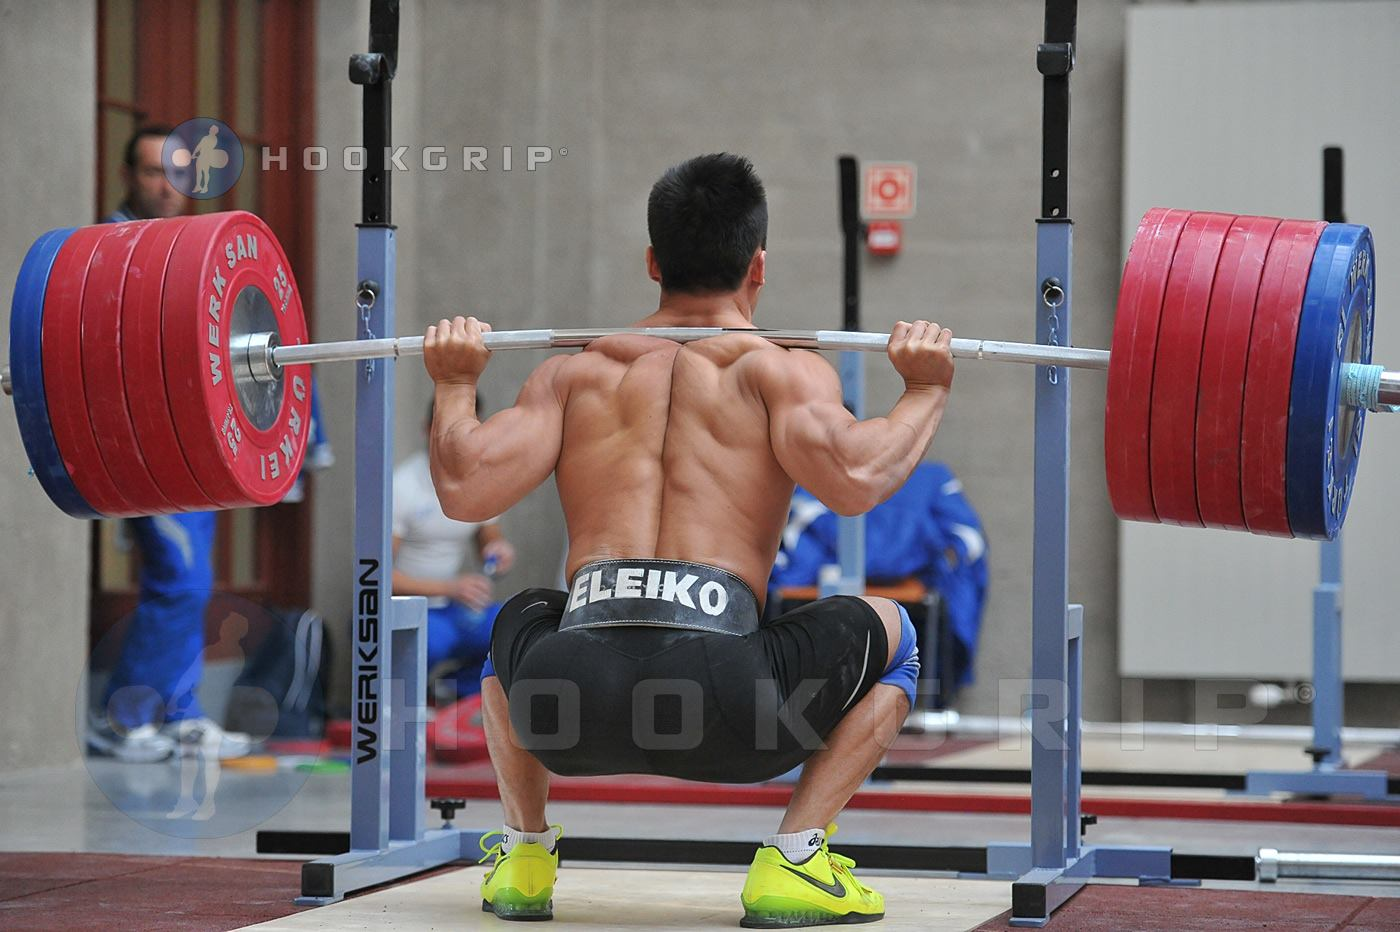 Ultimate-Guide-To-Proper-Powerlifting-Squat-Form-High-Bar-Squat 2